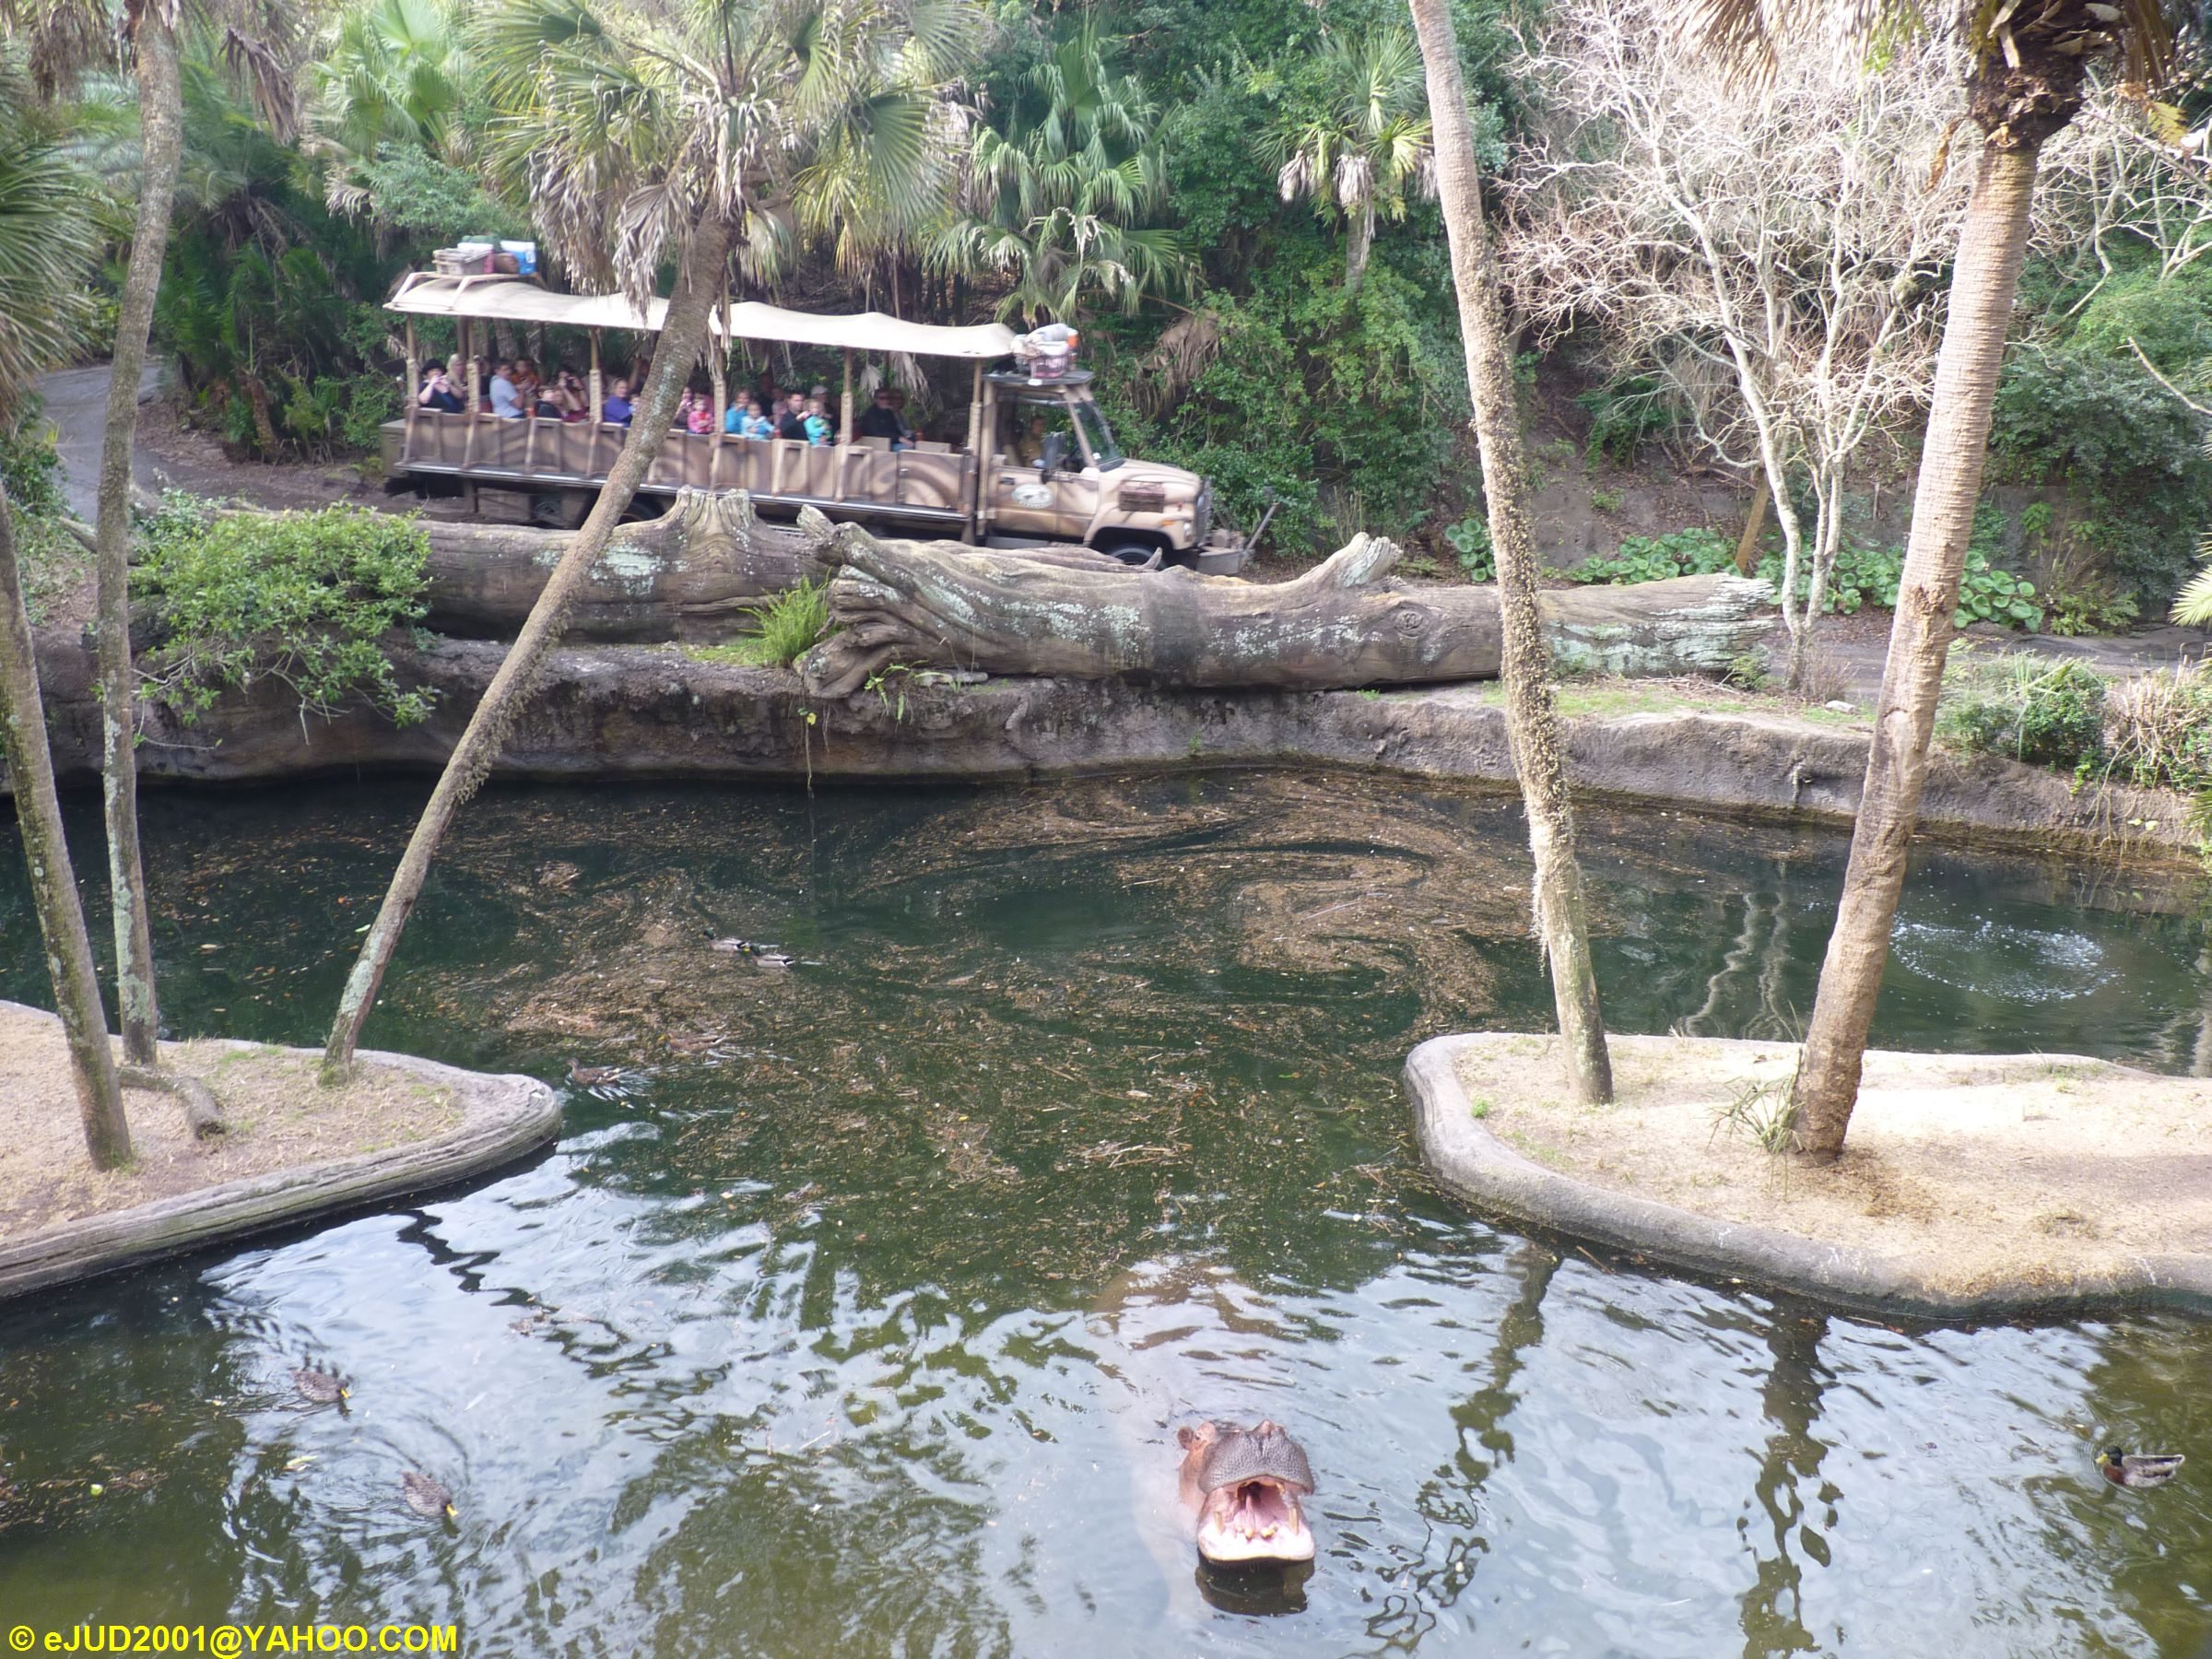 Jud's Disney Picture of the Day: HIPPO POND